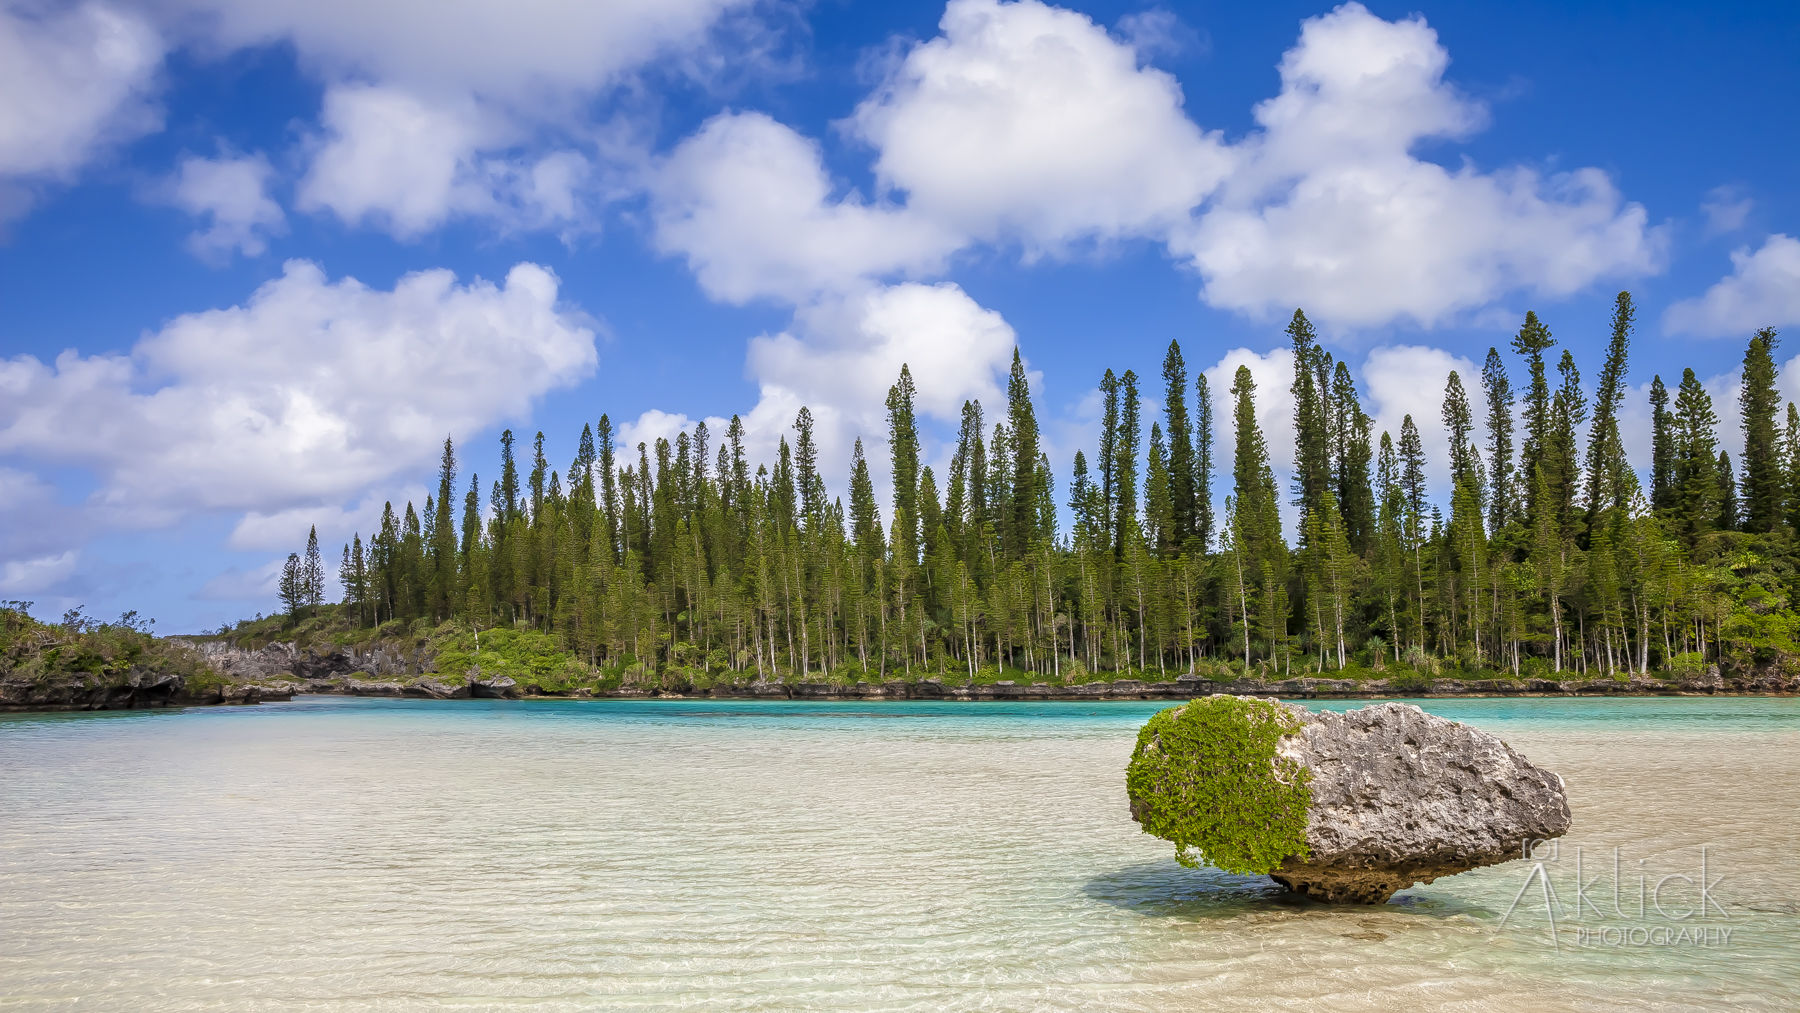 Piscine Naturelle on the Isle of Pines in New Caledonia.  Put on your list!